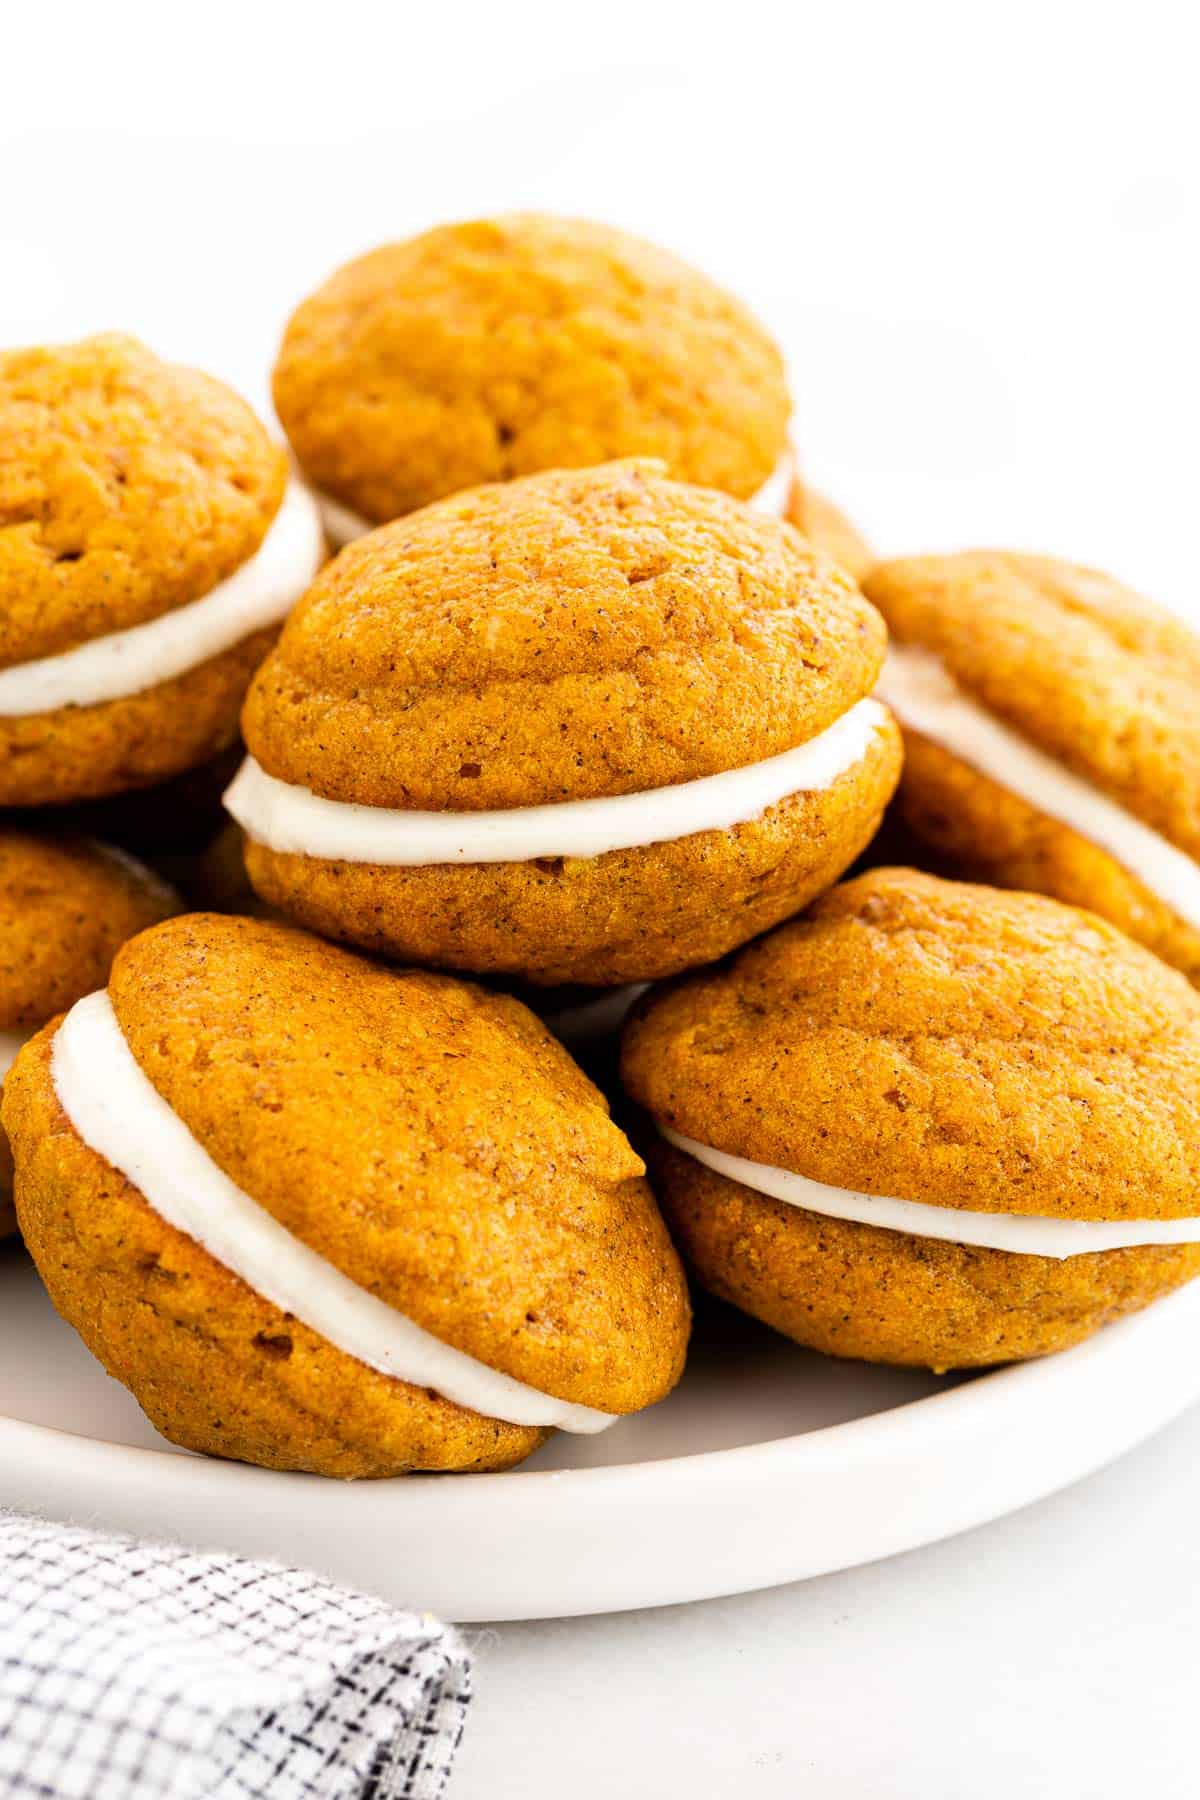 Pumpkin whoopie pies stuffed with a frosted cream cheese filling. Pumpkin puree adds a mildly sweet flavor and creates a bright orange color. #whoopiepies #pumpkin #pumpkincookies